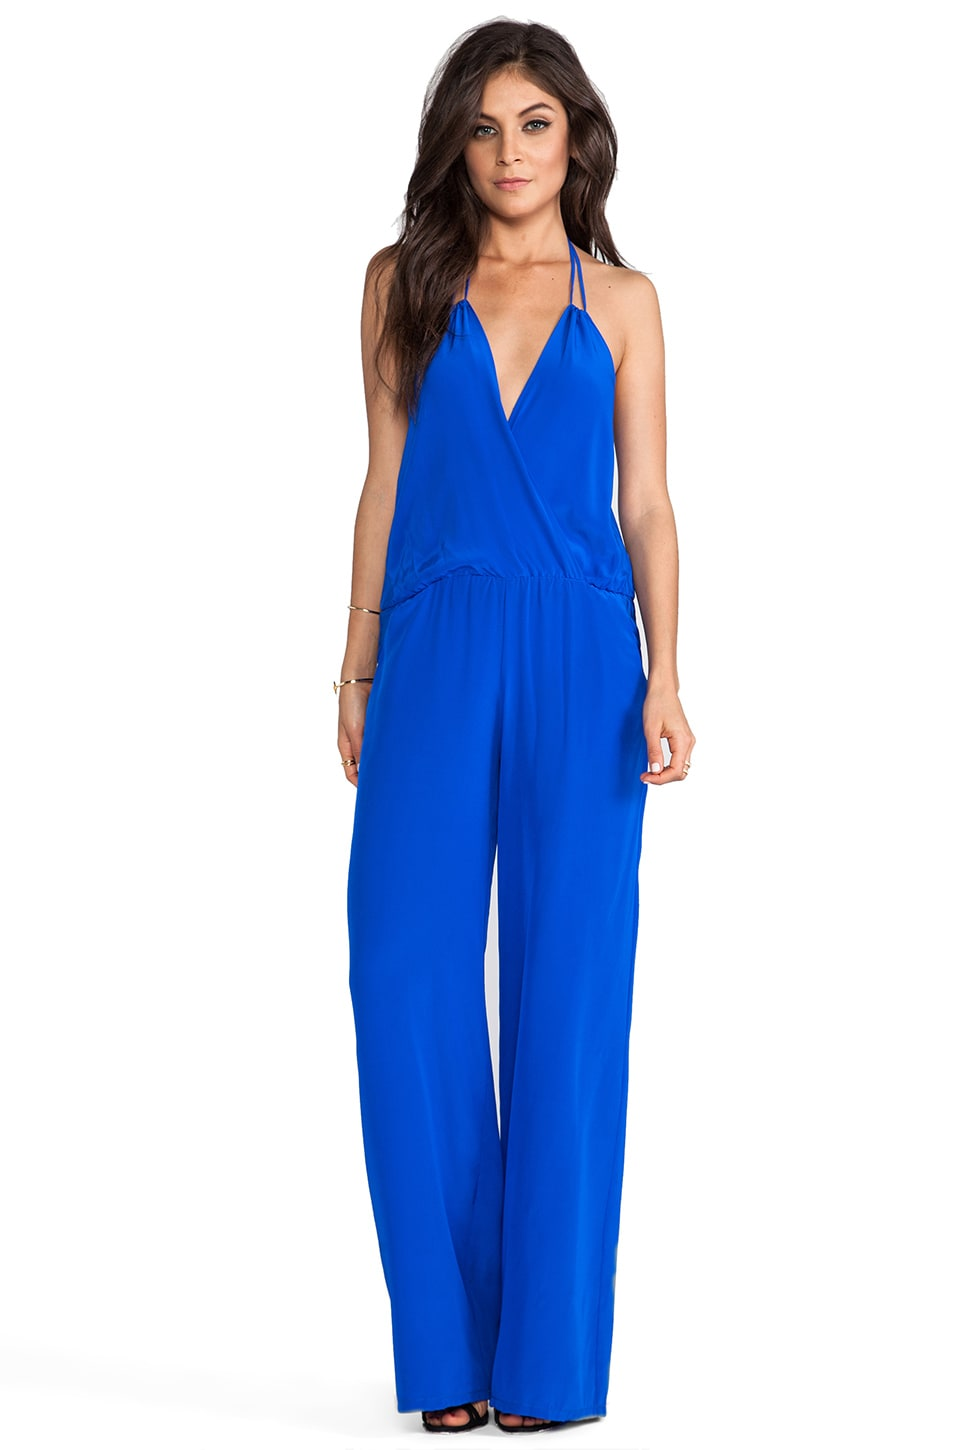 Karina Grimaldi Gardenia Solid Jumpsuit in Electric Blue